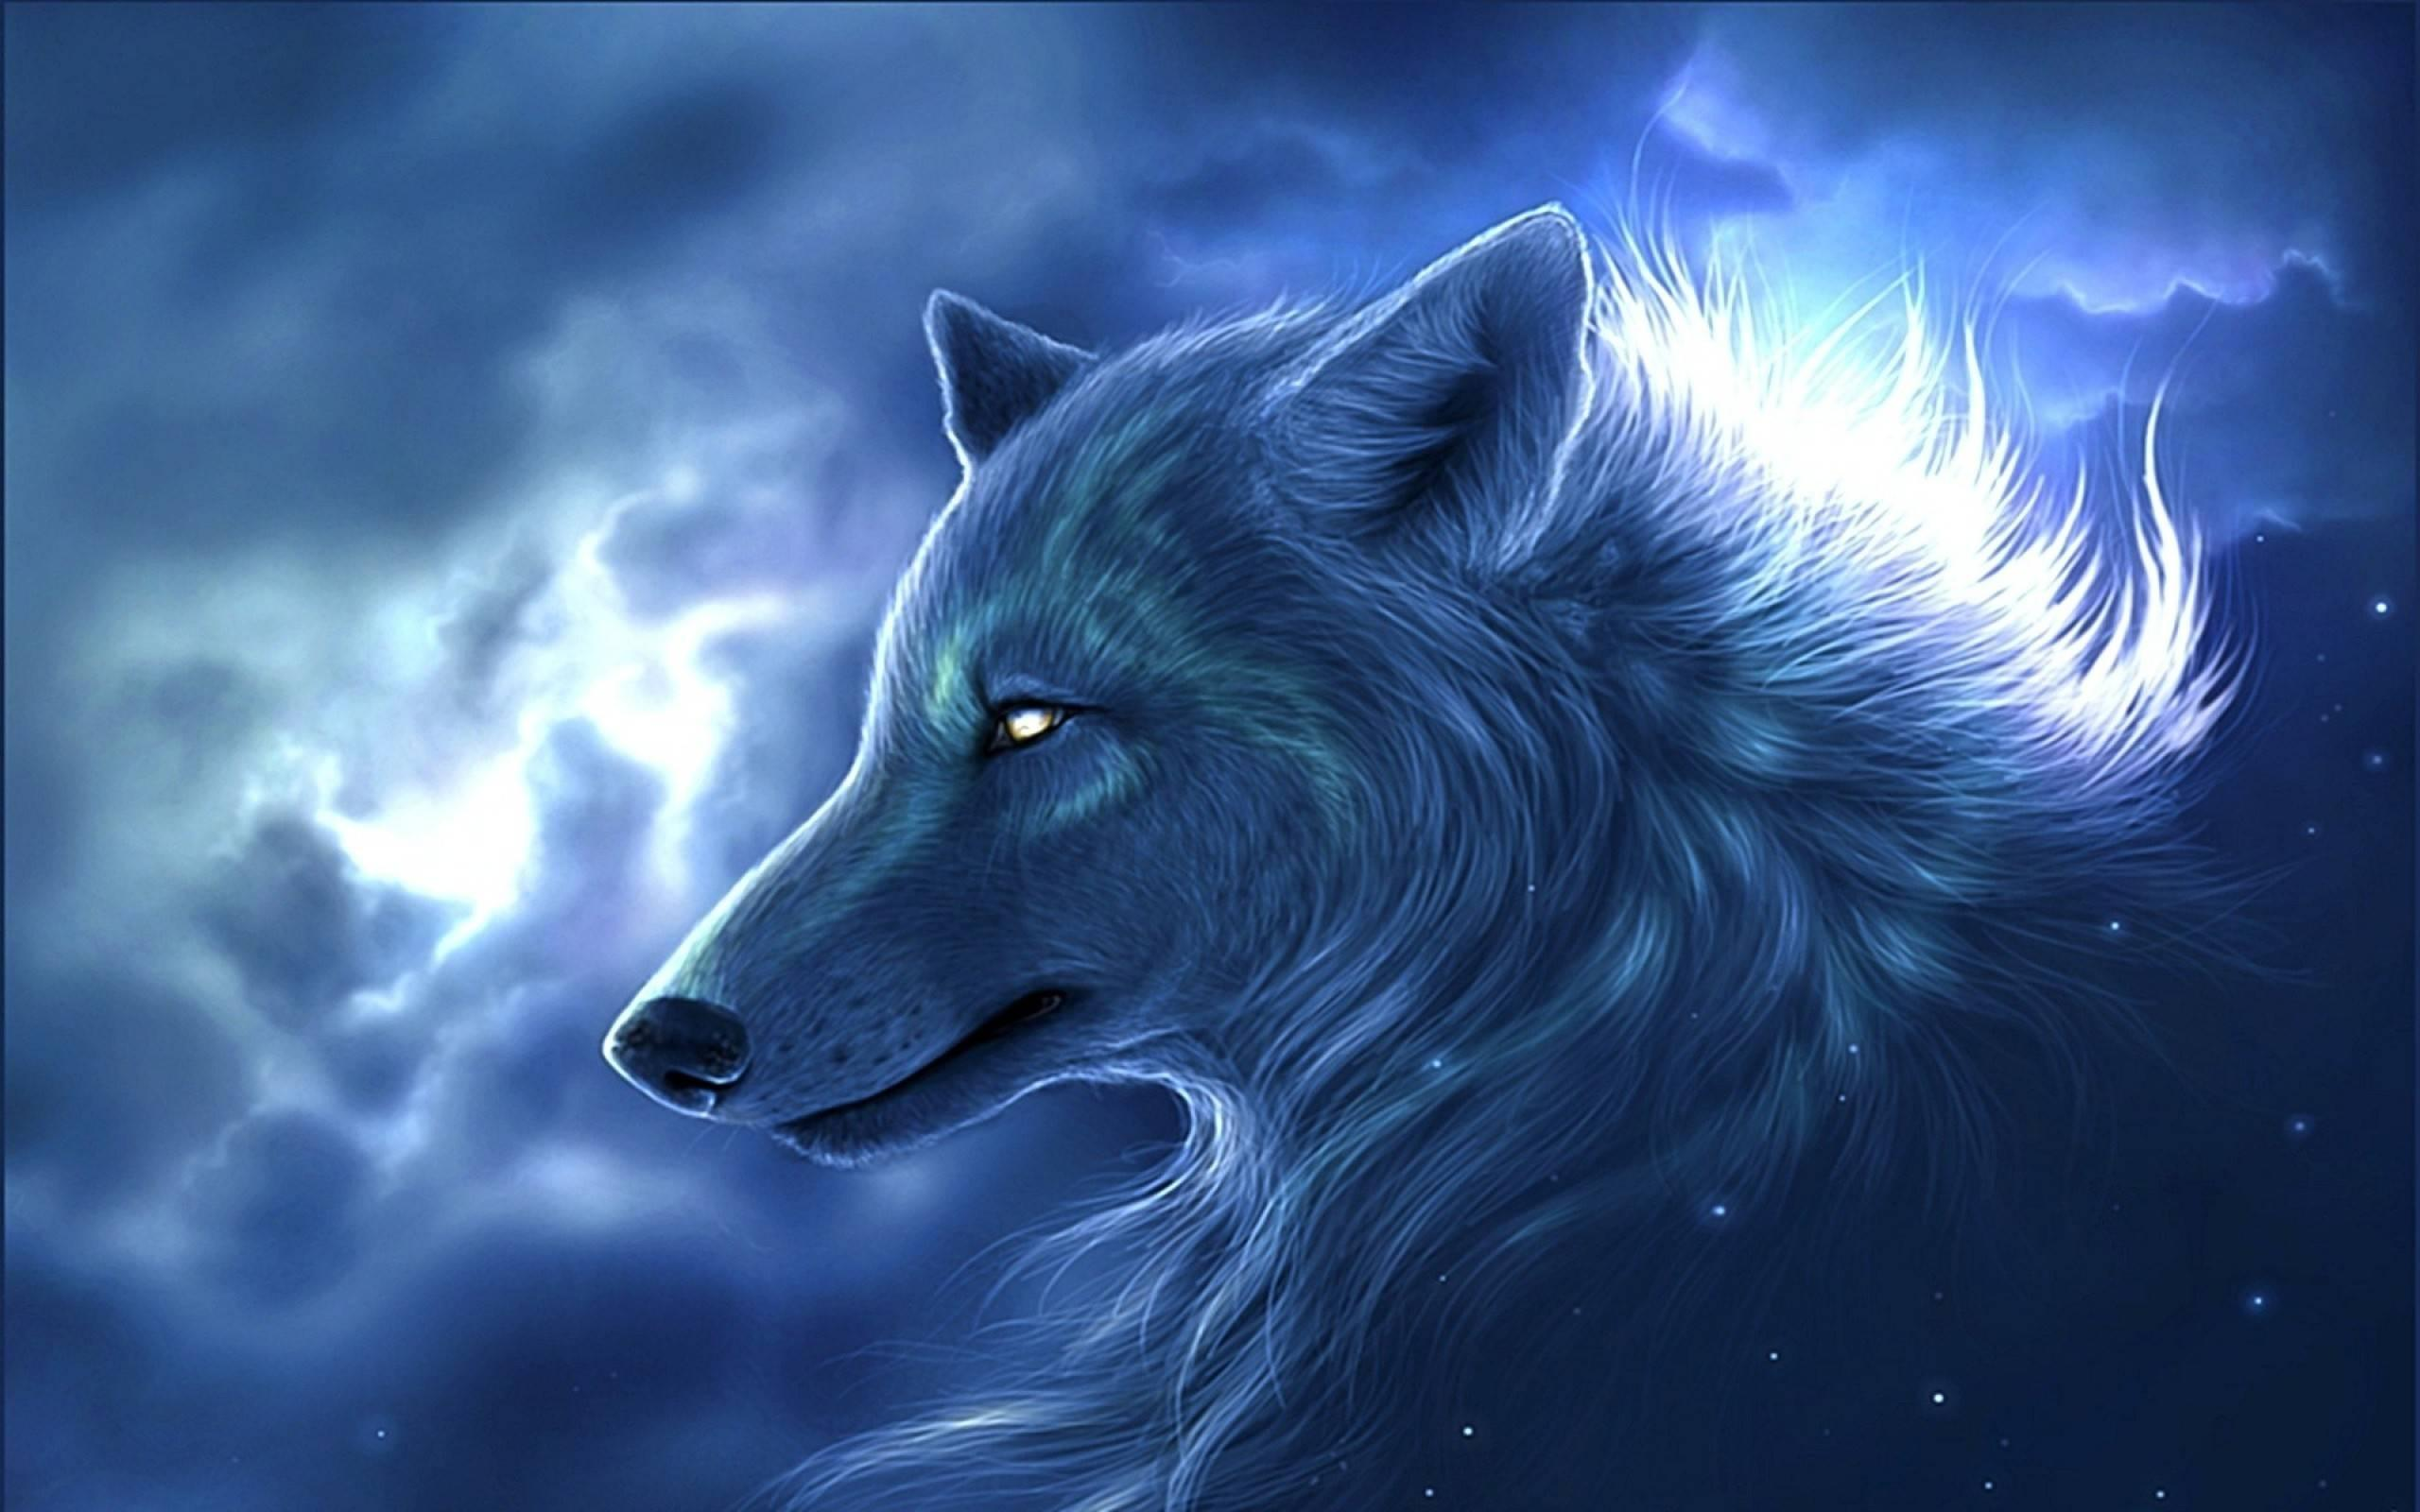 Wolf Anime Live Wallpaper for Android - APK Download